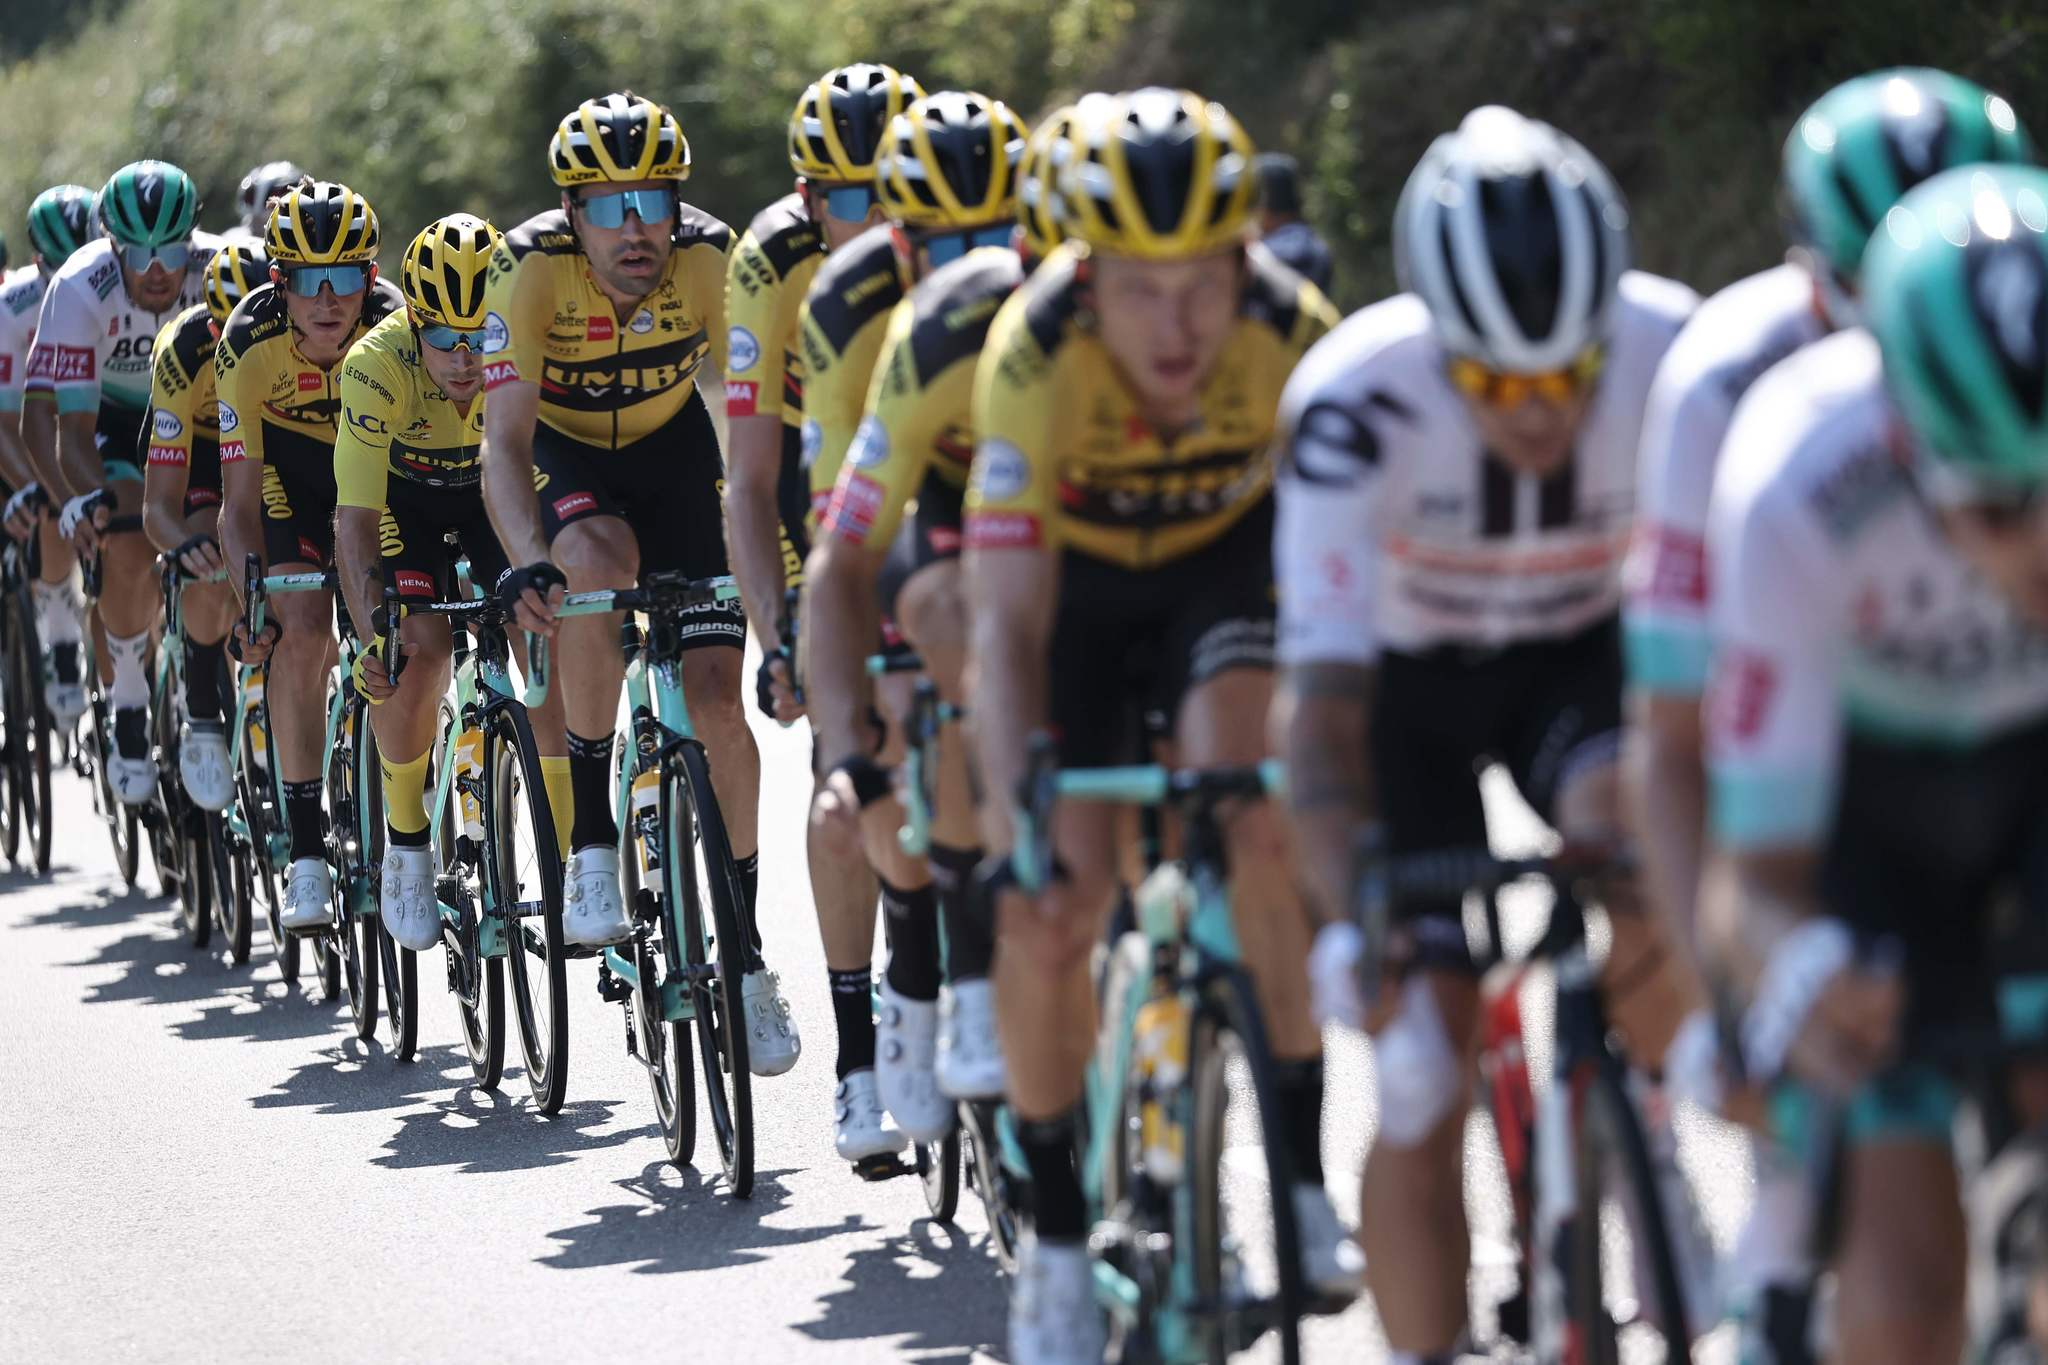 Team Bora Hansgrohe riders and Team Jumbo - Visma riders lead the pack during the 19th stage of the 107th edition of the lt;HIT gt;Tour lt;/HIT gt; de France cycling race, 160 km between Bourg-en-Bresse and Champagnole, on September 18, 2020. (Photo by KENZO TRIBOUILLARD / AFP)